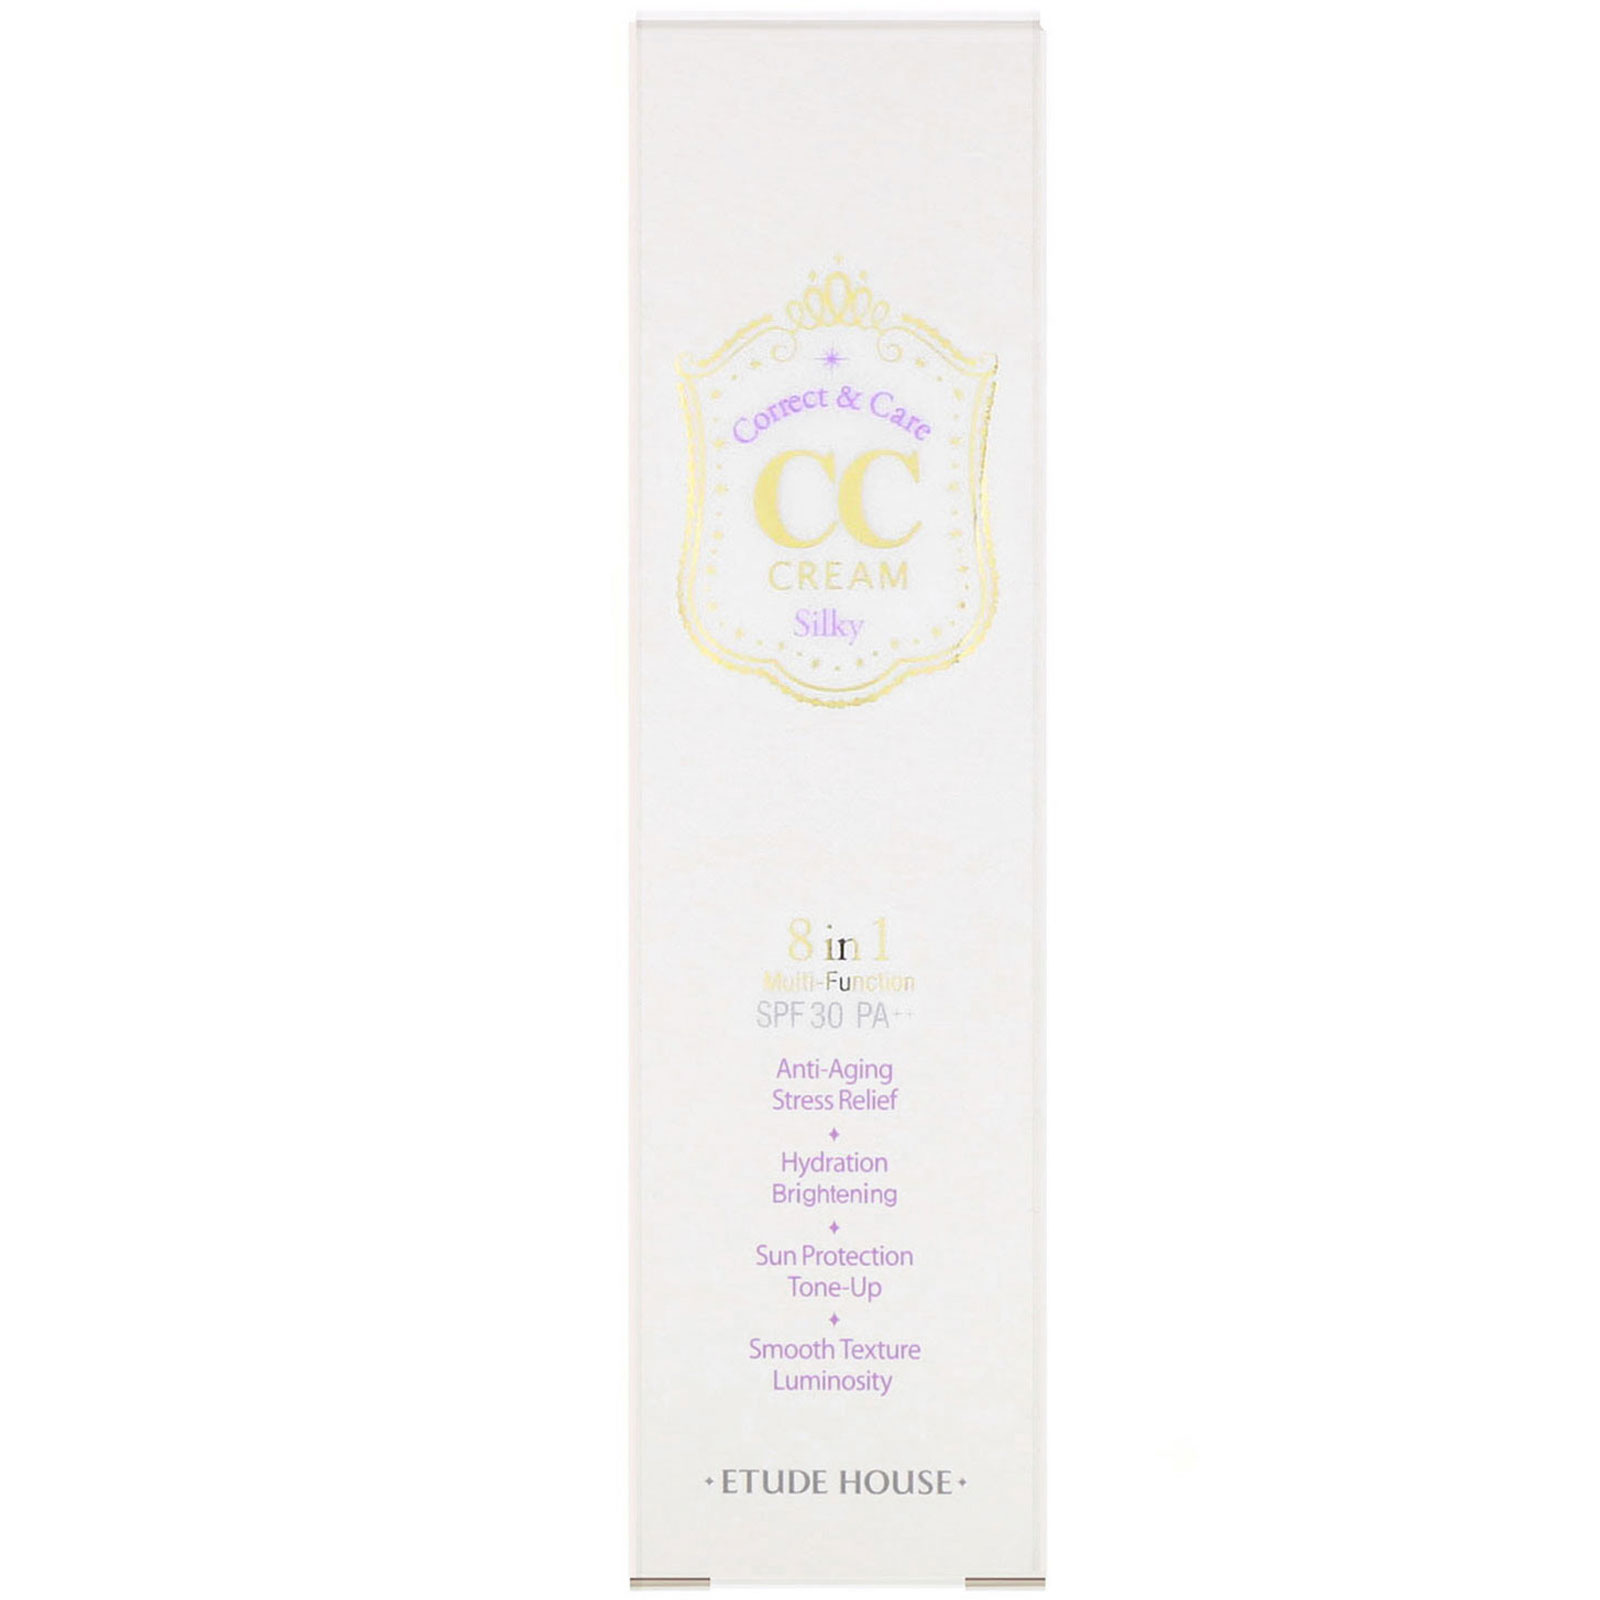 Etude House, Correct & Care CC Cream SPF 30/PA++, Silky, 1 23 oz (35 g)